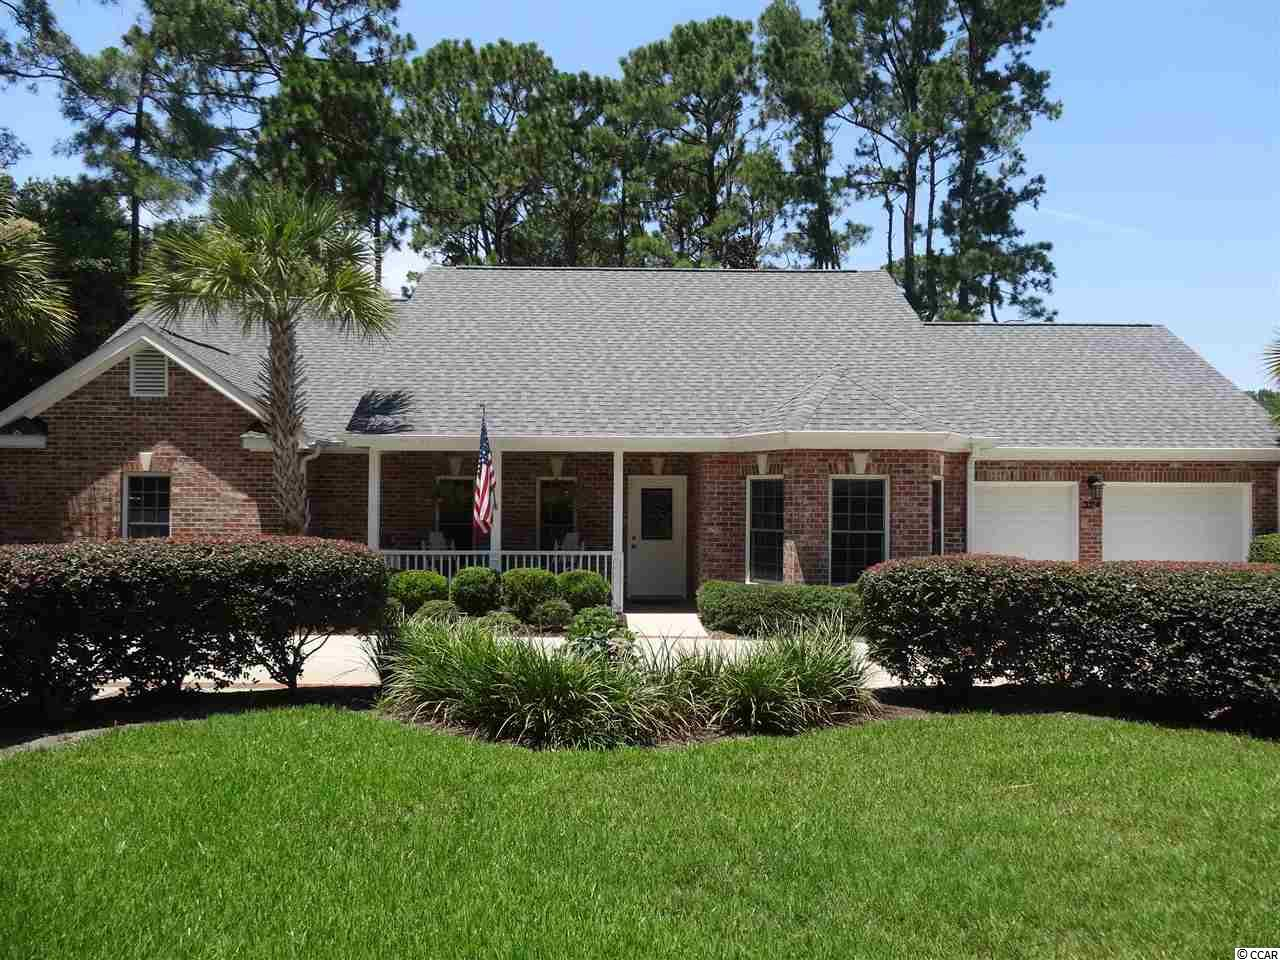 BEST OF BOTH WORLDS - Minutes to the beach and living in a gated community....All Brick one story home. Attractive, charming, and comfortable with three Bedrooms and two full baths. Schulter master bathroom shower with no leak system. This home is on the 4th fairway of the Pawleys Plantation, a Jack Nicklaus Signature Golf Course. Open Concept Living, Great Room with brick fireplace with gas logs, built-in bookcases and cabinets, vaulted ceilings, wood flooring, and ceiling fan with light. Large eat-in kitchen with center island, granite counter tops, desk area, and plenty of upscale cabinetry. Formal dining room off of kitchen, 15 X 15 bricked floor screen porch off of great room, (could easily glassed in and be heated and cooled or sliders for all season weather), brick patio, laundry room with sink and cabinets, two car garage, 4 zone Rainbird irrigation sprinkler system with new pump, and recent circular driveway. Lush landscaping, and HVAC & Roof replaced in 2018. MOVE IN CONDITION.  A perfect Coastal Lifestyle, 60 miles to Charleston and 30 miles to Myrtle Beach. Shopping, casual and fine dining, famous Pawleys Island Hammock Shops and beaches within 10 minutes drive. Huntington Beach State Park and Brookgreen Gardens 12 minutes north in Murrells Inlet.  Myrtle Beach 30 minutes north, and Charleston 75 miles south.   Pawleys Plantation Golf & Country Club information available upon request.